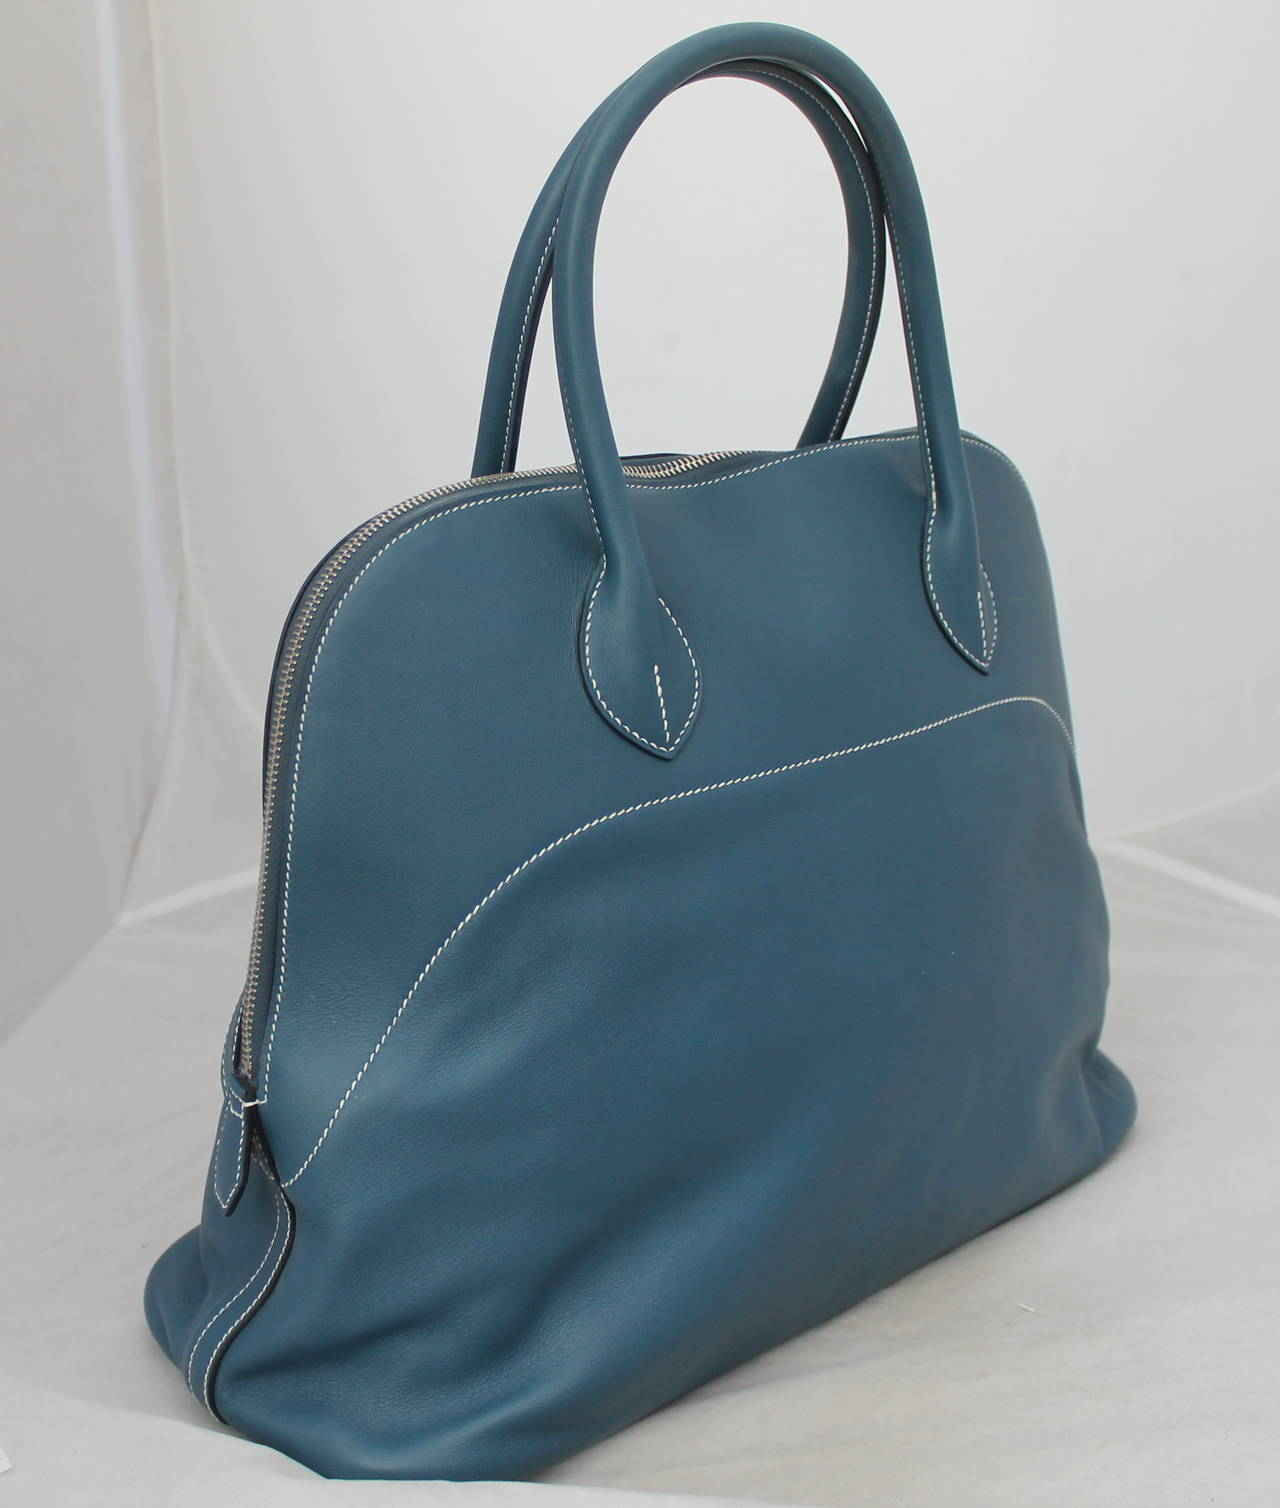 """Hermes Thalassa Blue 40cm Veau Swift Bolide Handbag circa 2012. This handbag is in very good condition with very light wear. It comes with a box, duster, lock, and lock duster.    Measurements: Length- 12"""" Width- 16"""" Depth- 6"""" Handle Drop- 5"""""""